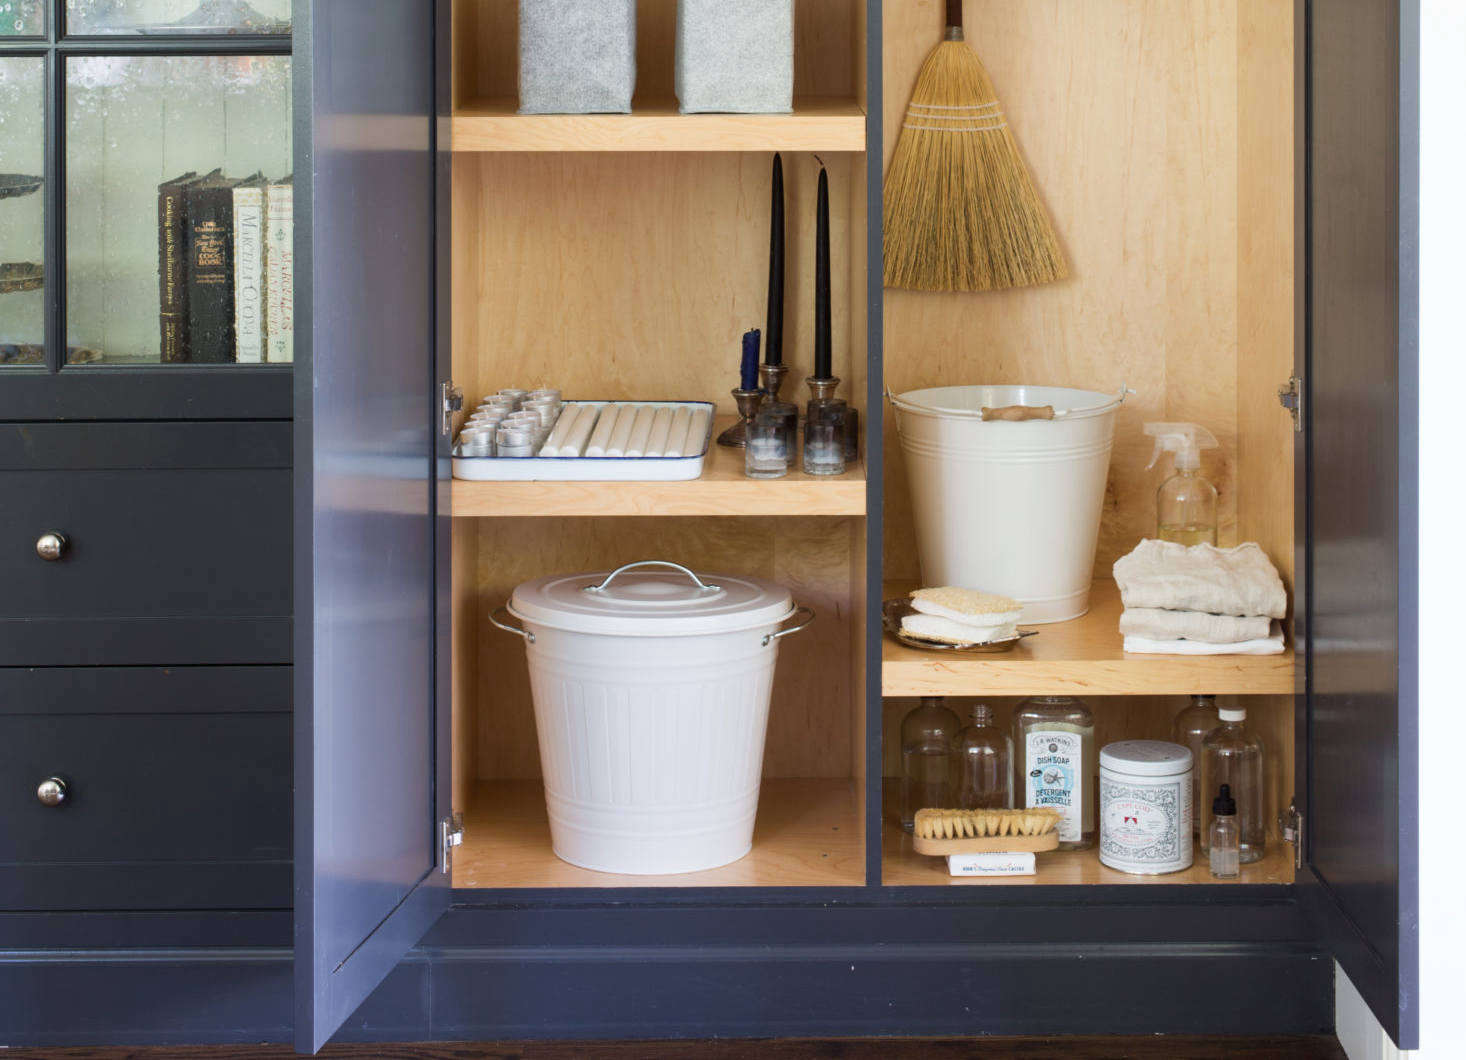 In Michelle's utility closet, a Knodd Bin, in white, holds pet food; $14.99. (SeeWhat's Inside: The Stealth Utility Closet.)